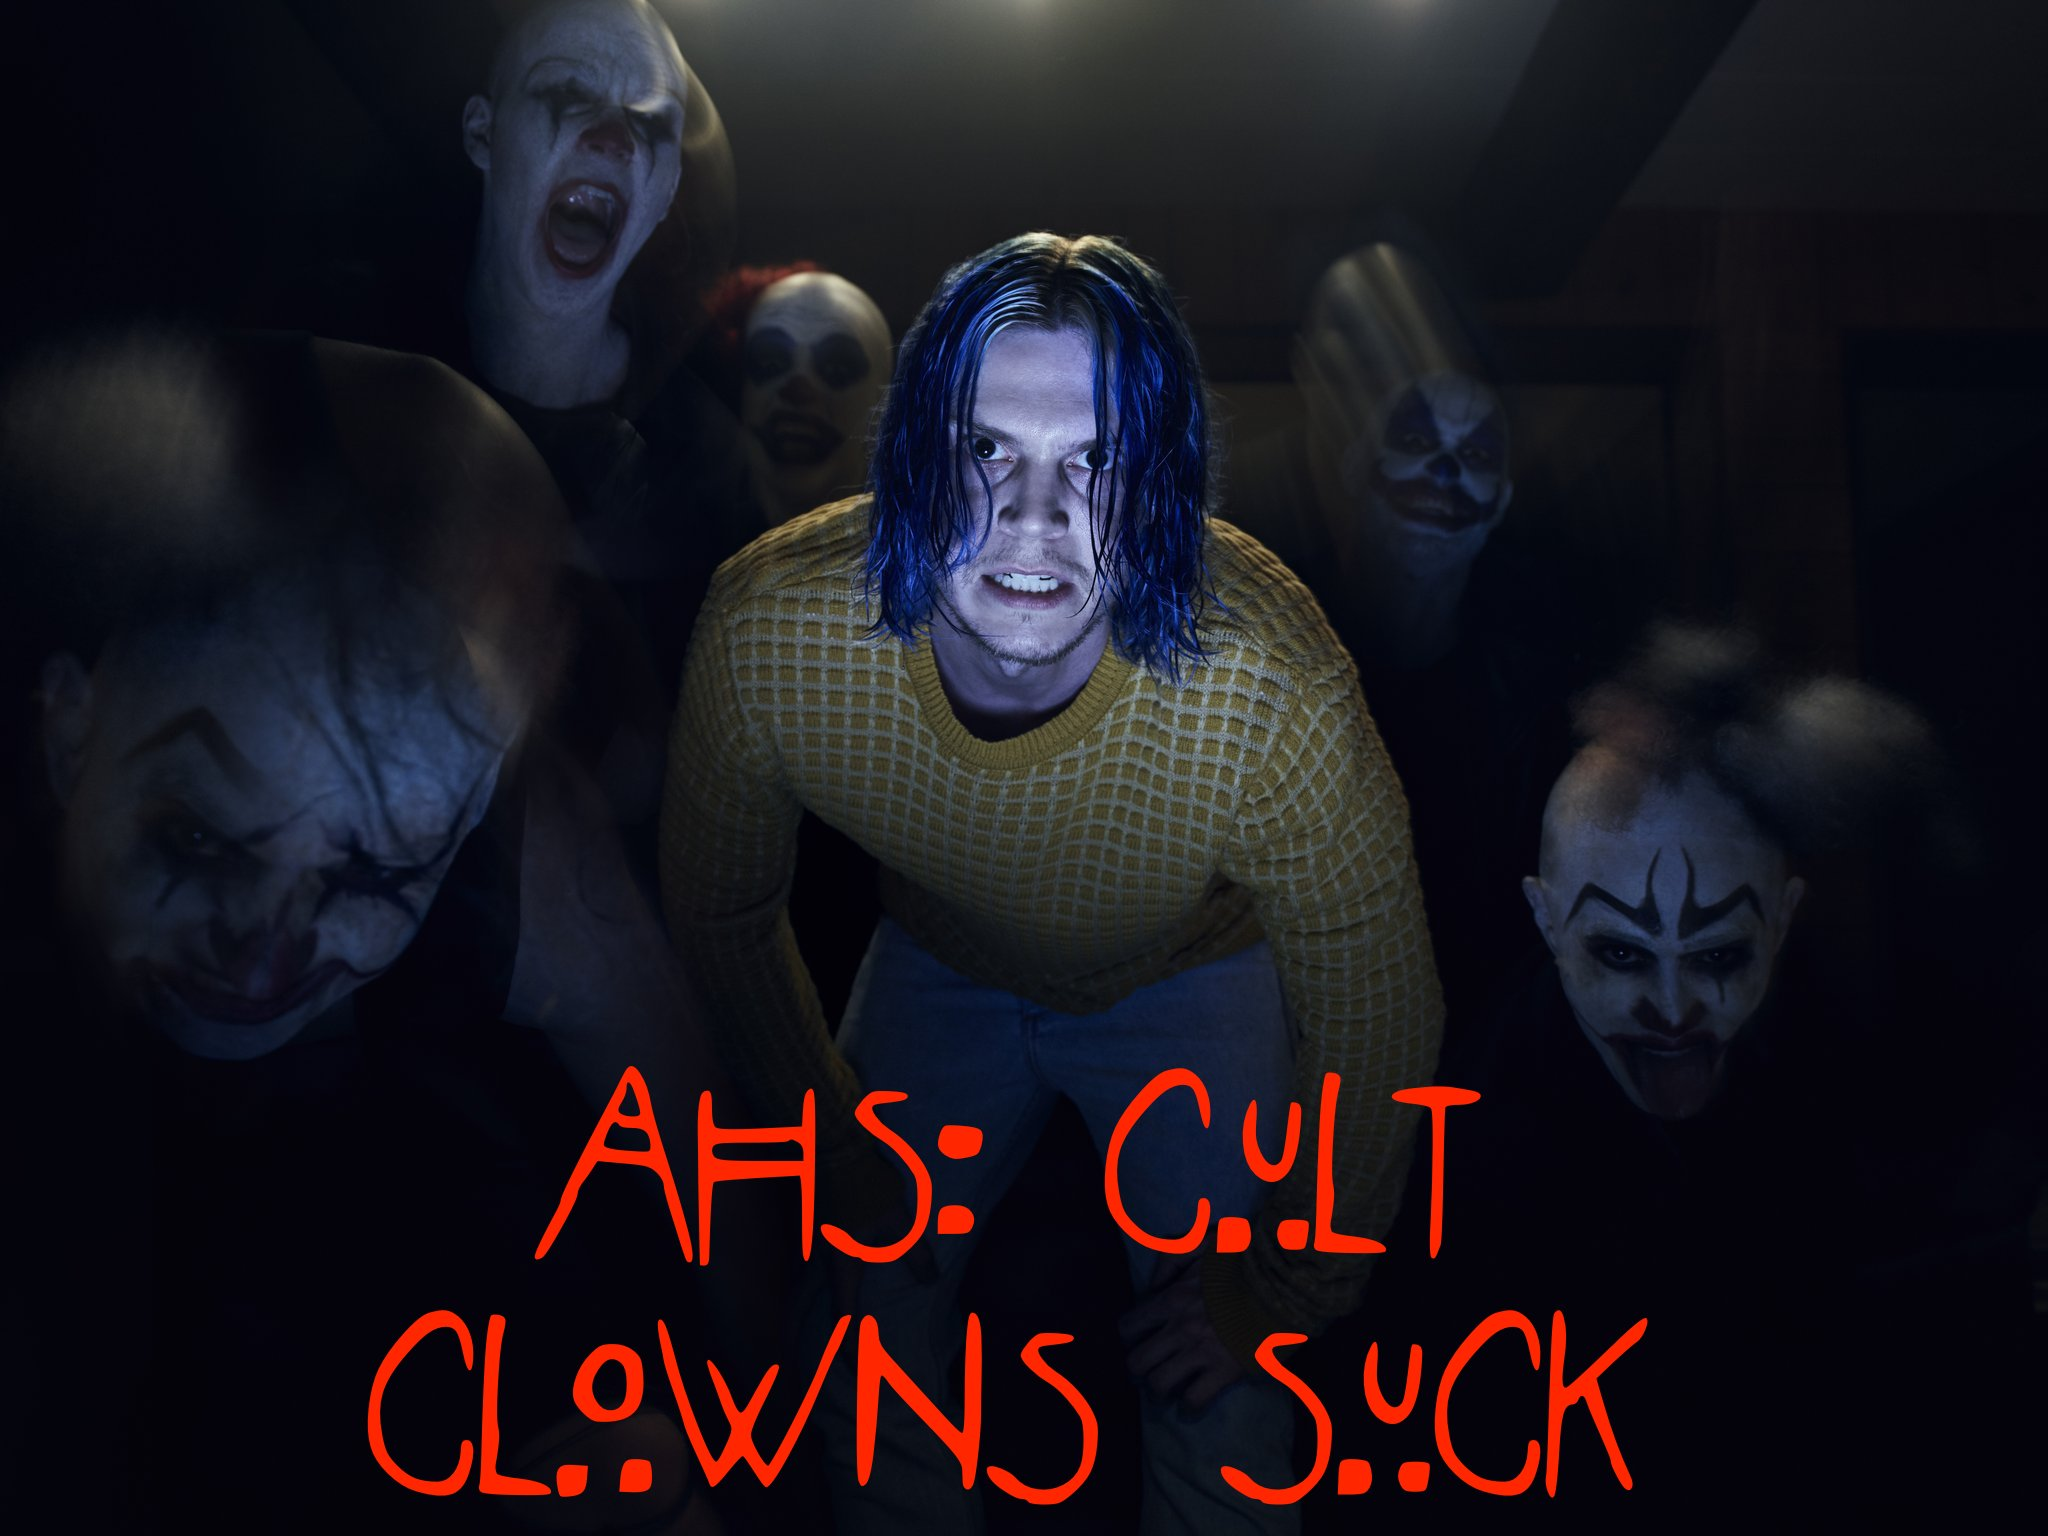 Clowns Suck! An American Horror Story: Cult Podcast, Eps 5-6